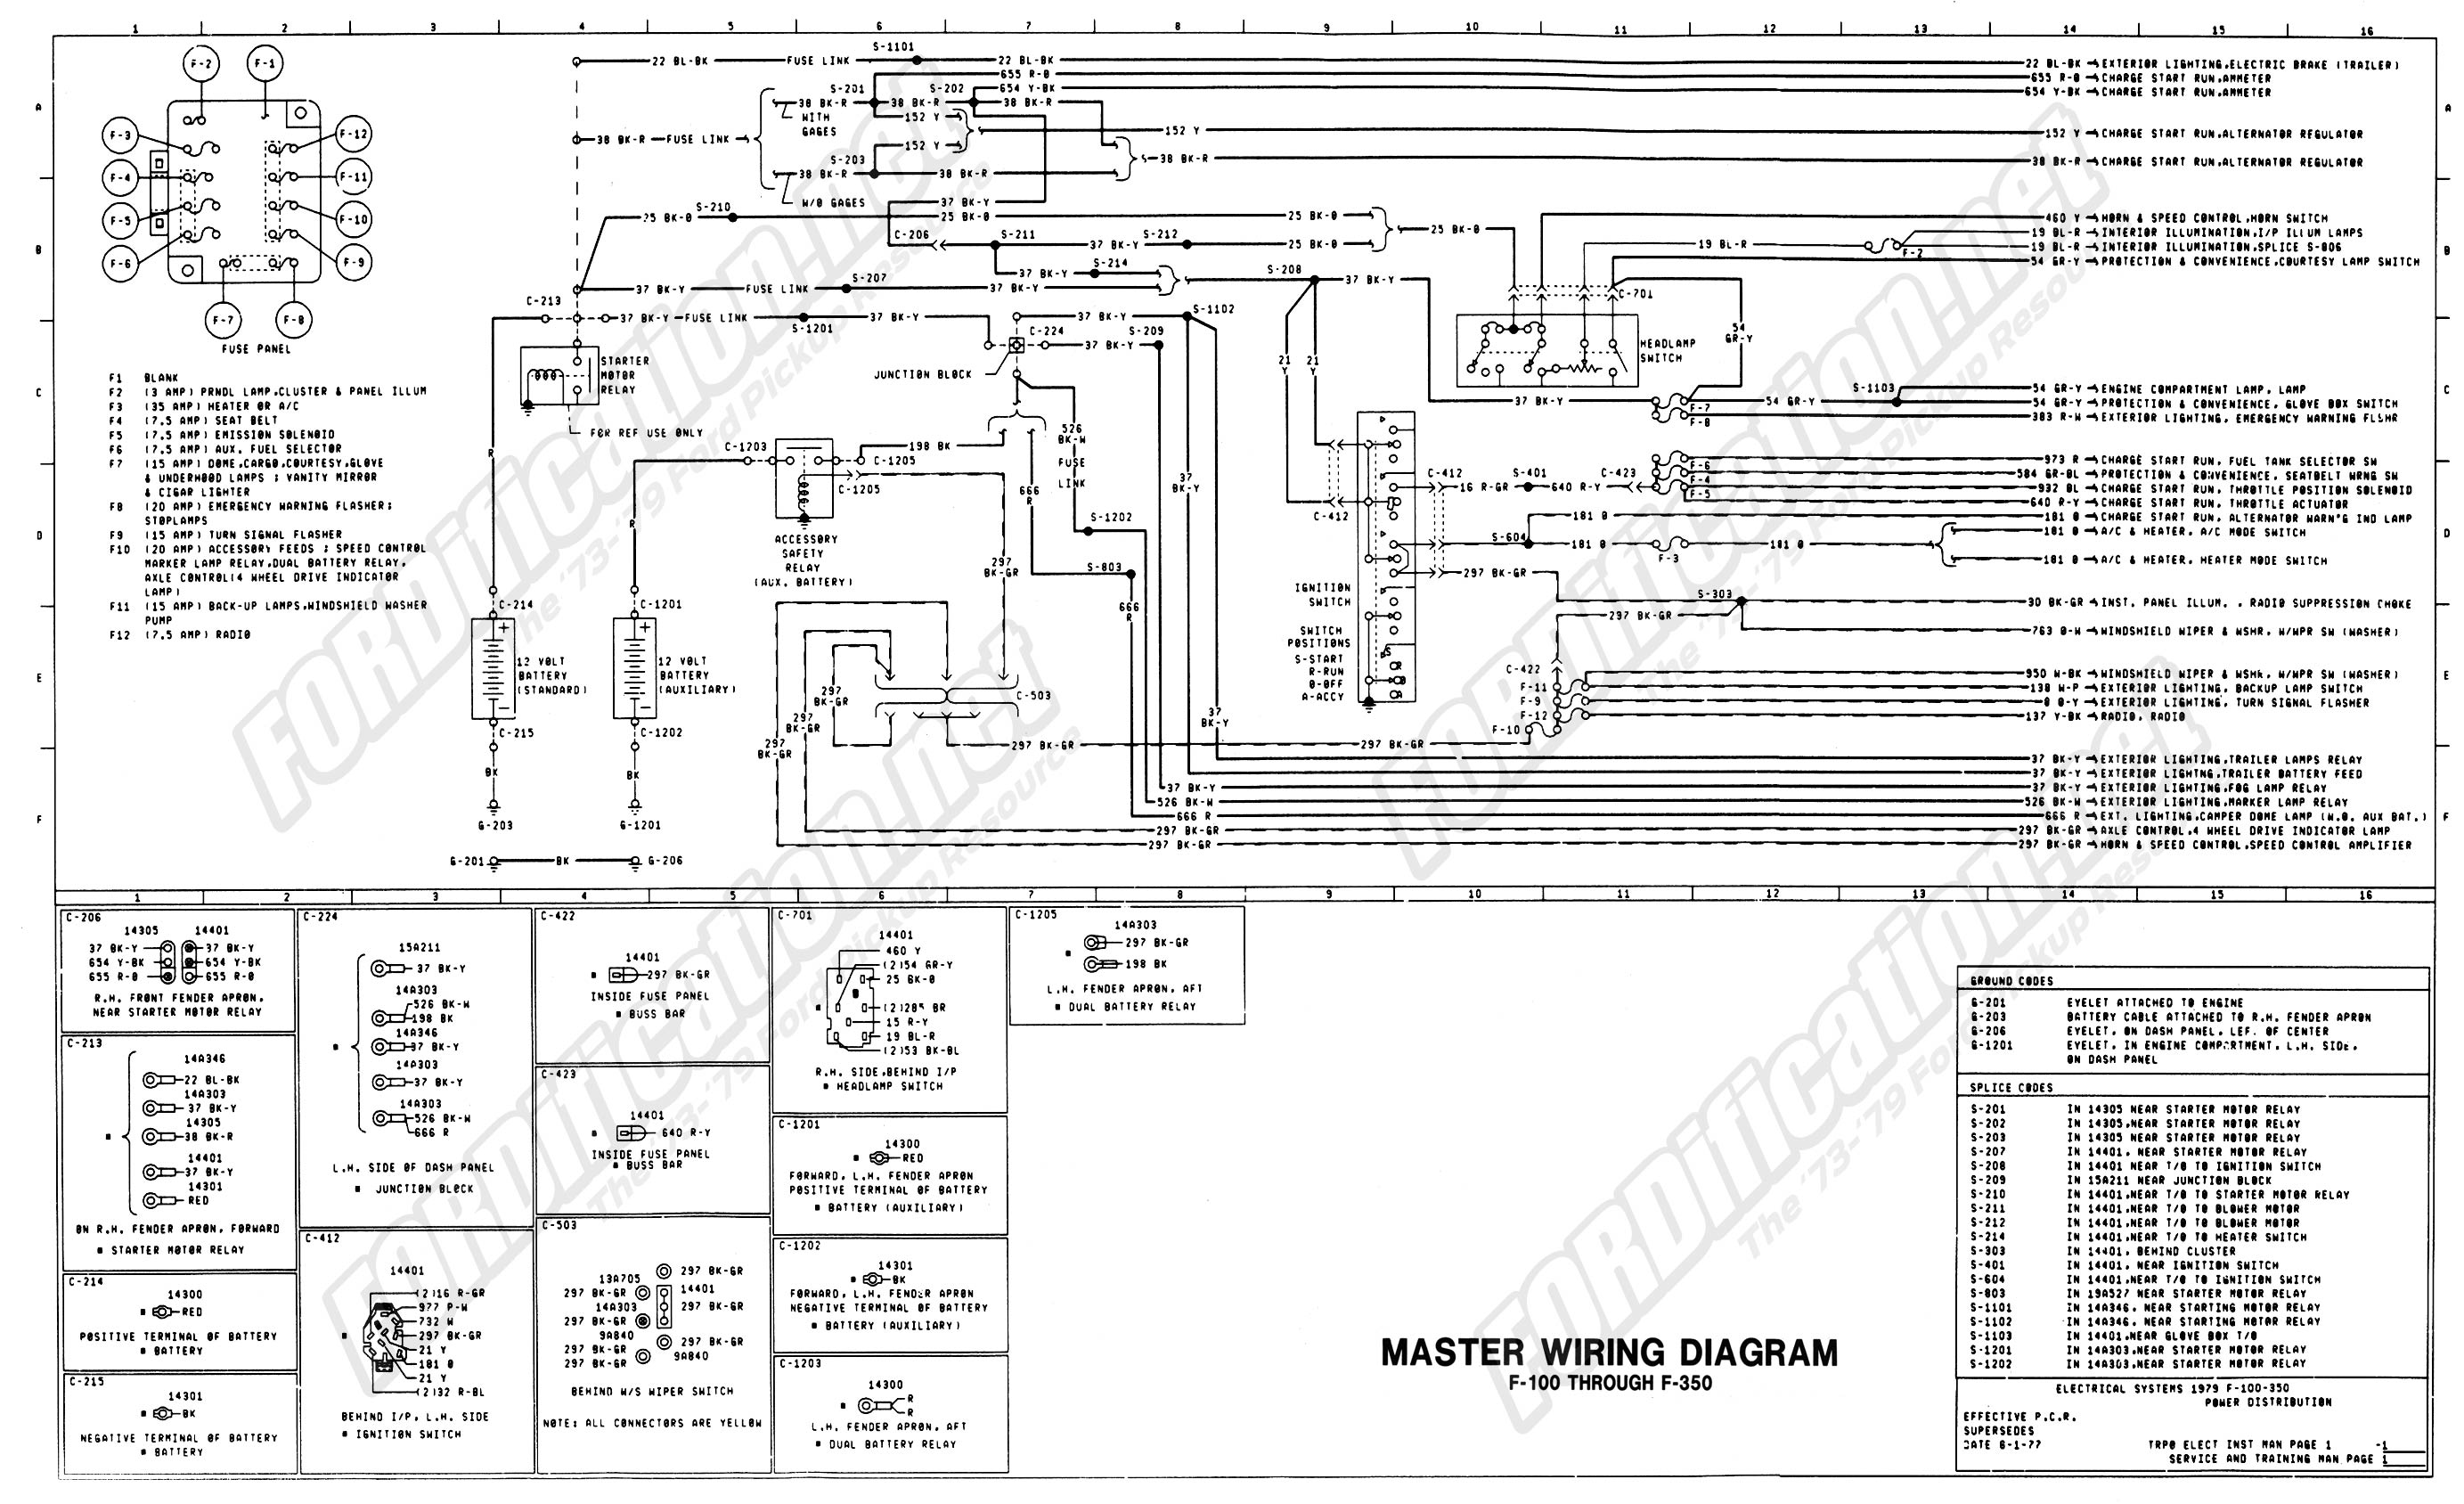 686101 2002 Ford Explorer Sport Fuse Box Diagram Wiring Diagram Library